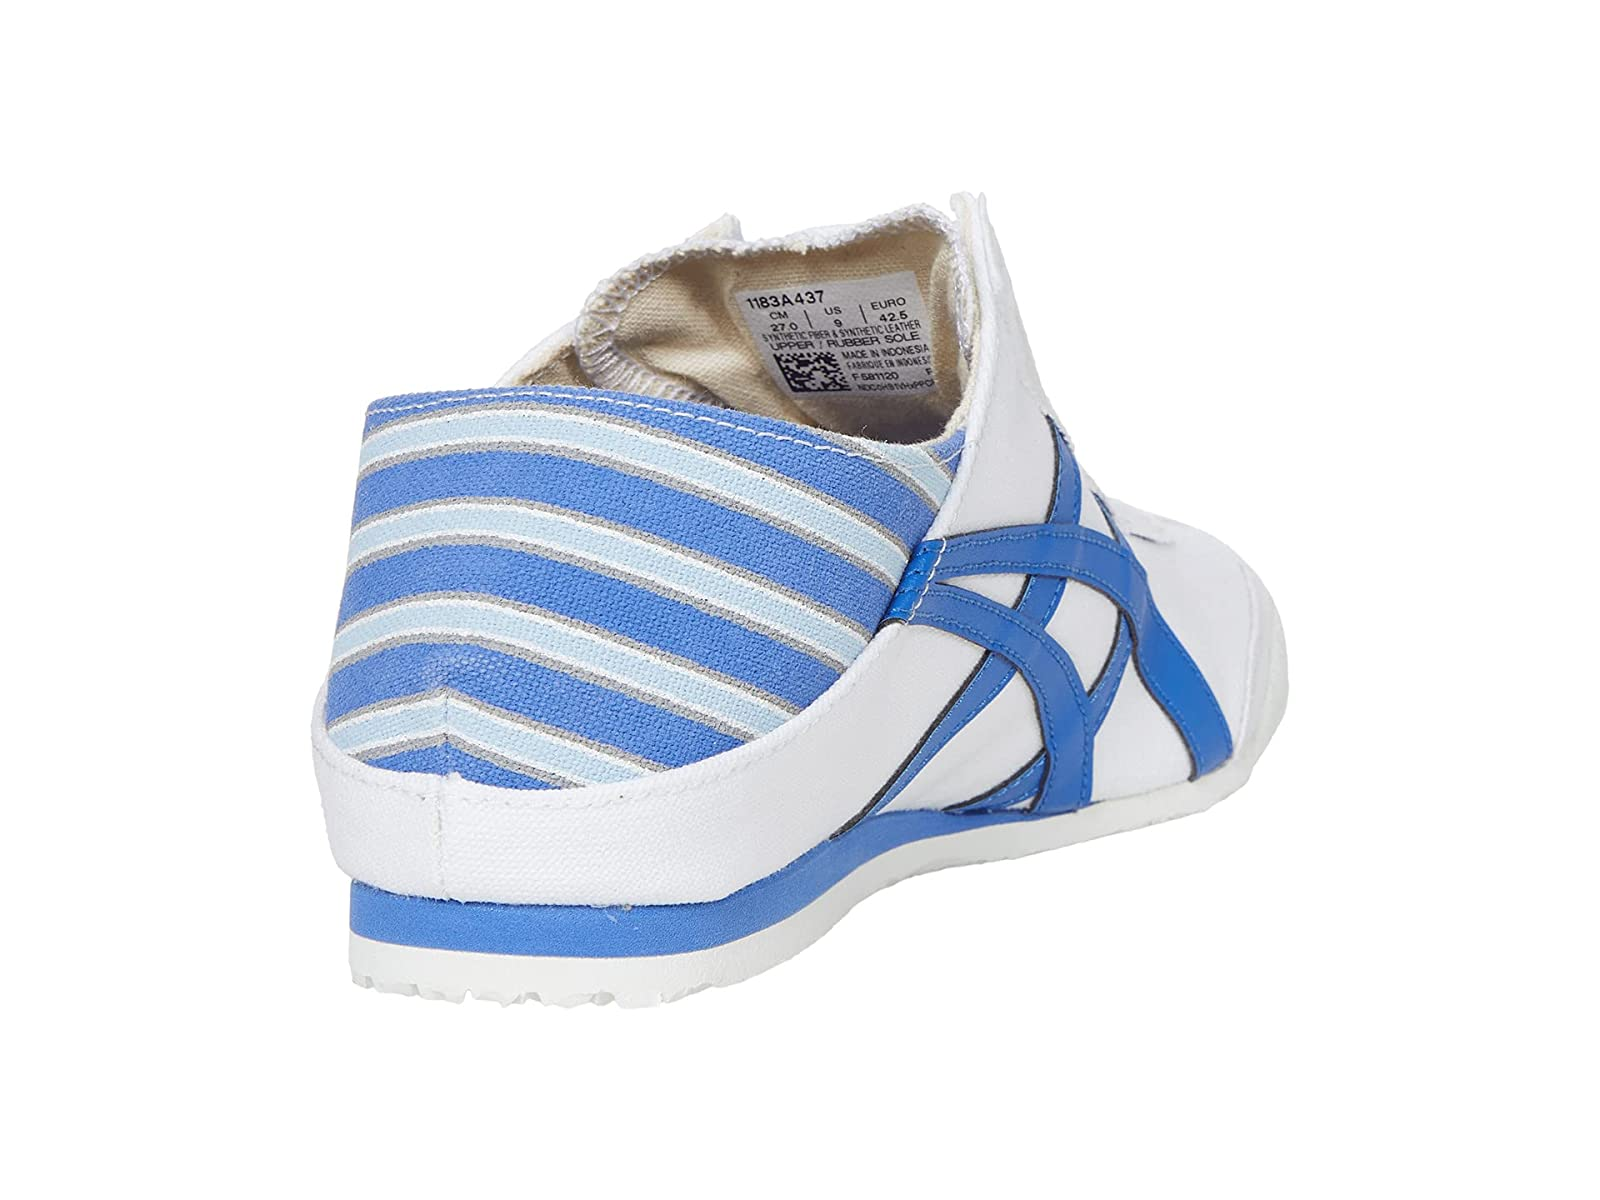 miniature 18 - Adulte Unisexe Baskets & Athlétique Chaussures Onitsuka Tiger Mexico 66 Paraty